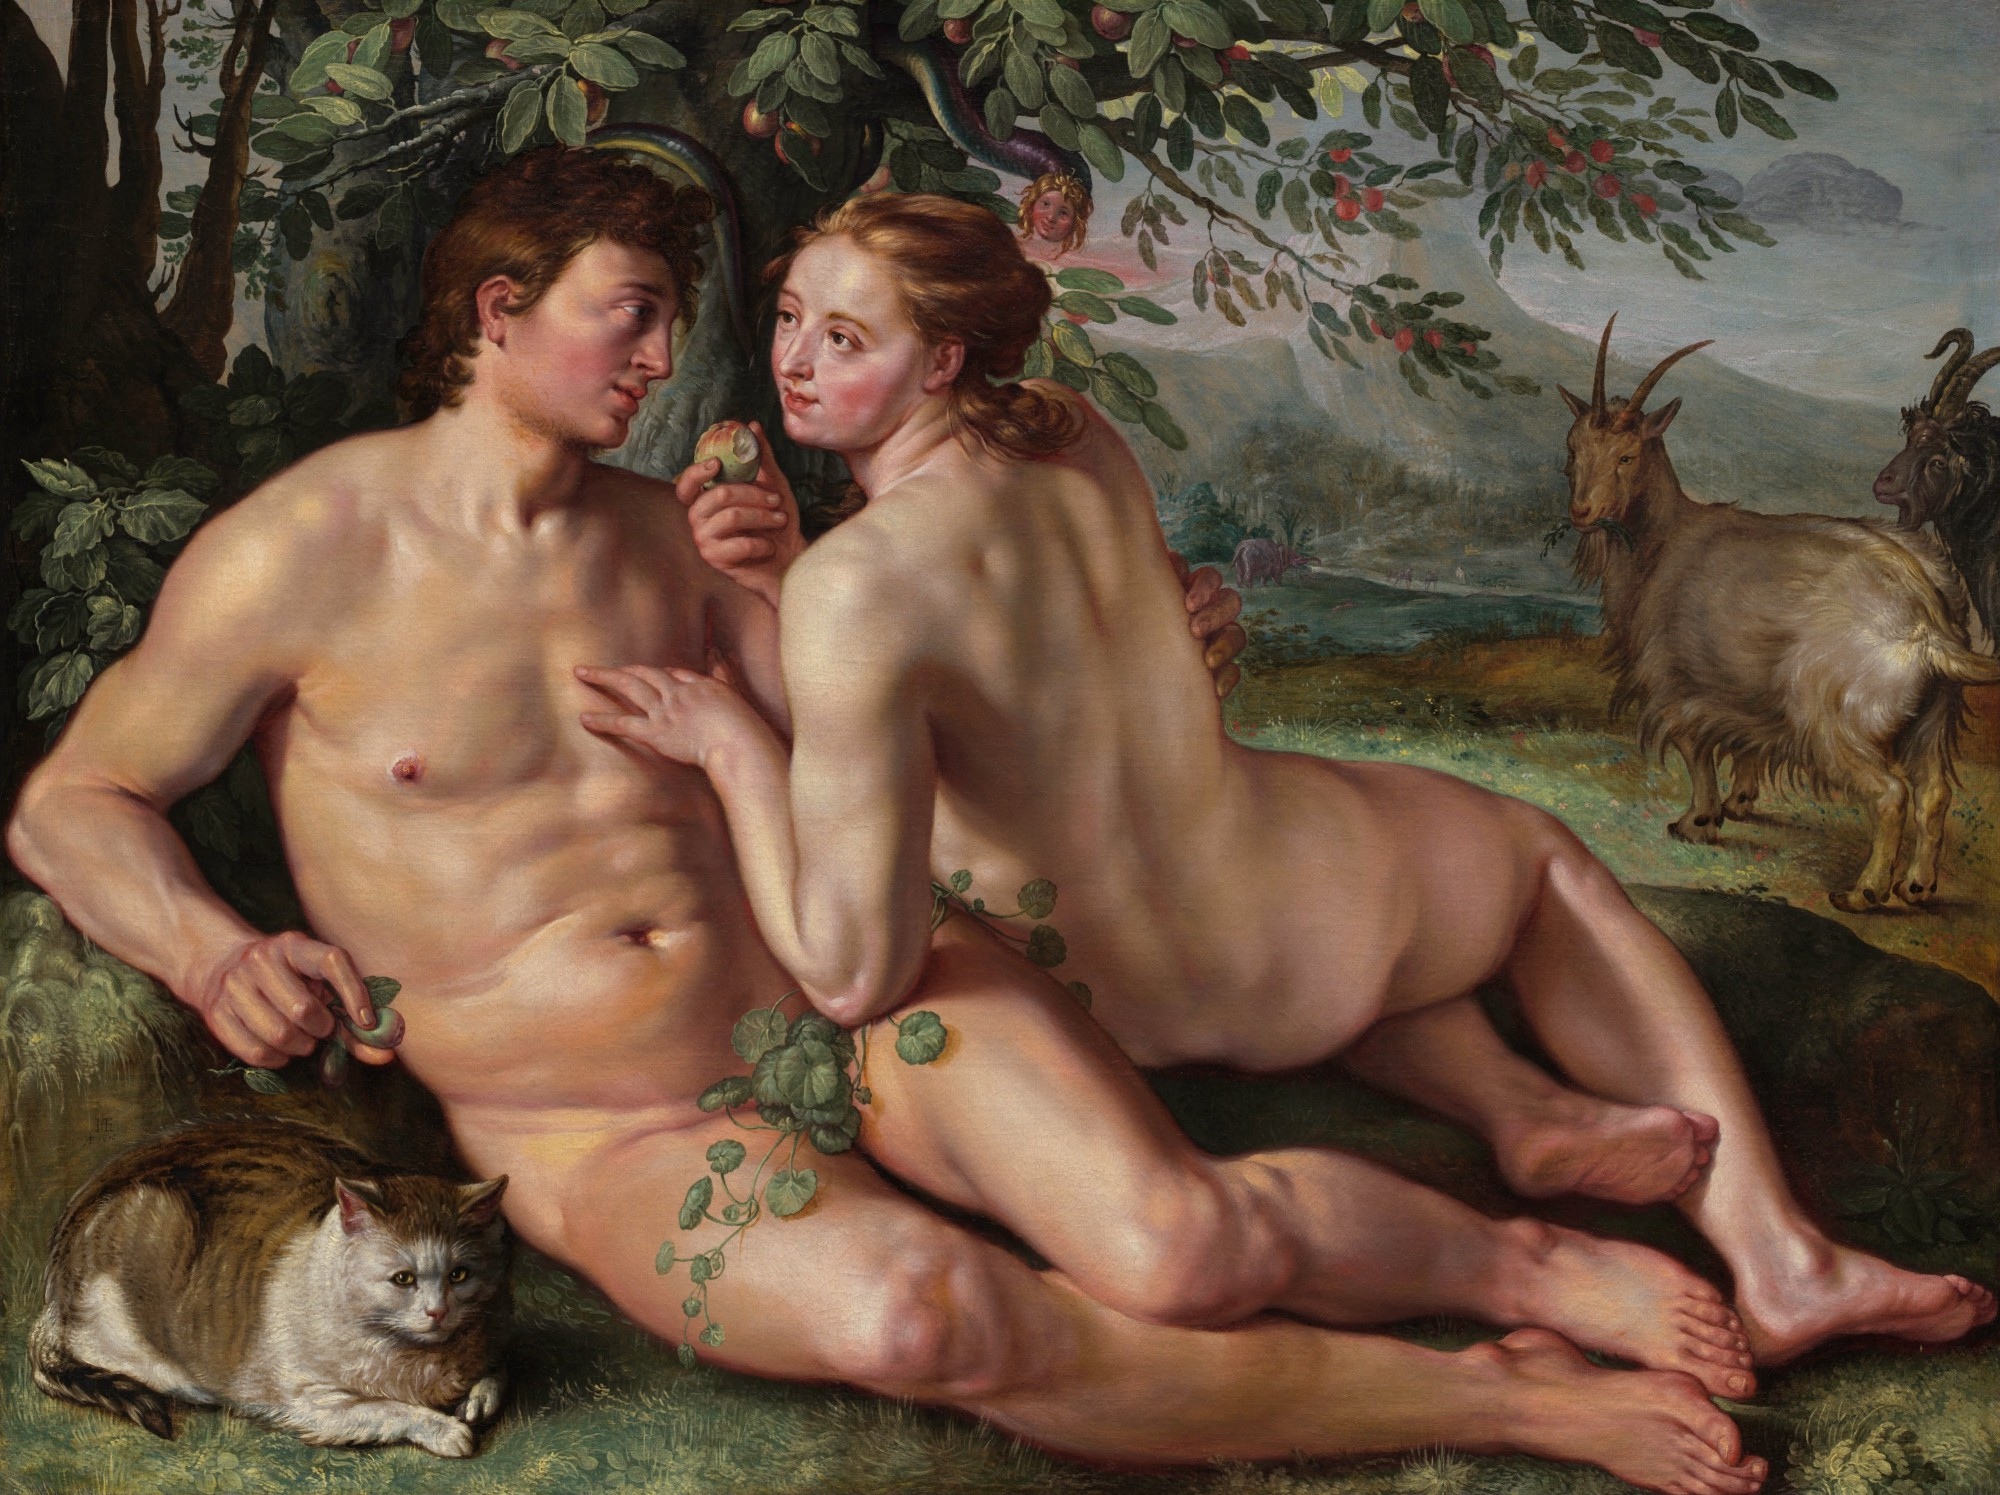 A painting of Adam and Eve sitting together in the Garden of Eden, accompanied by a fat cat and a goat.